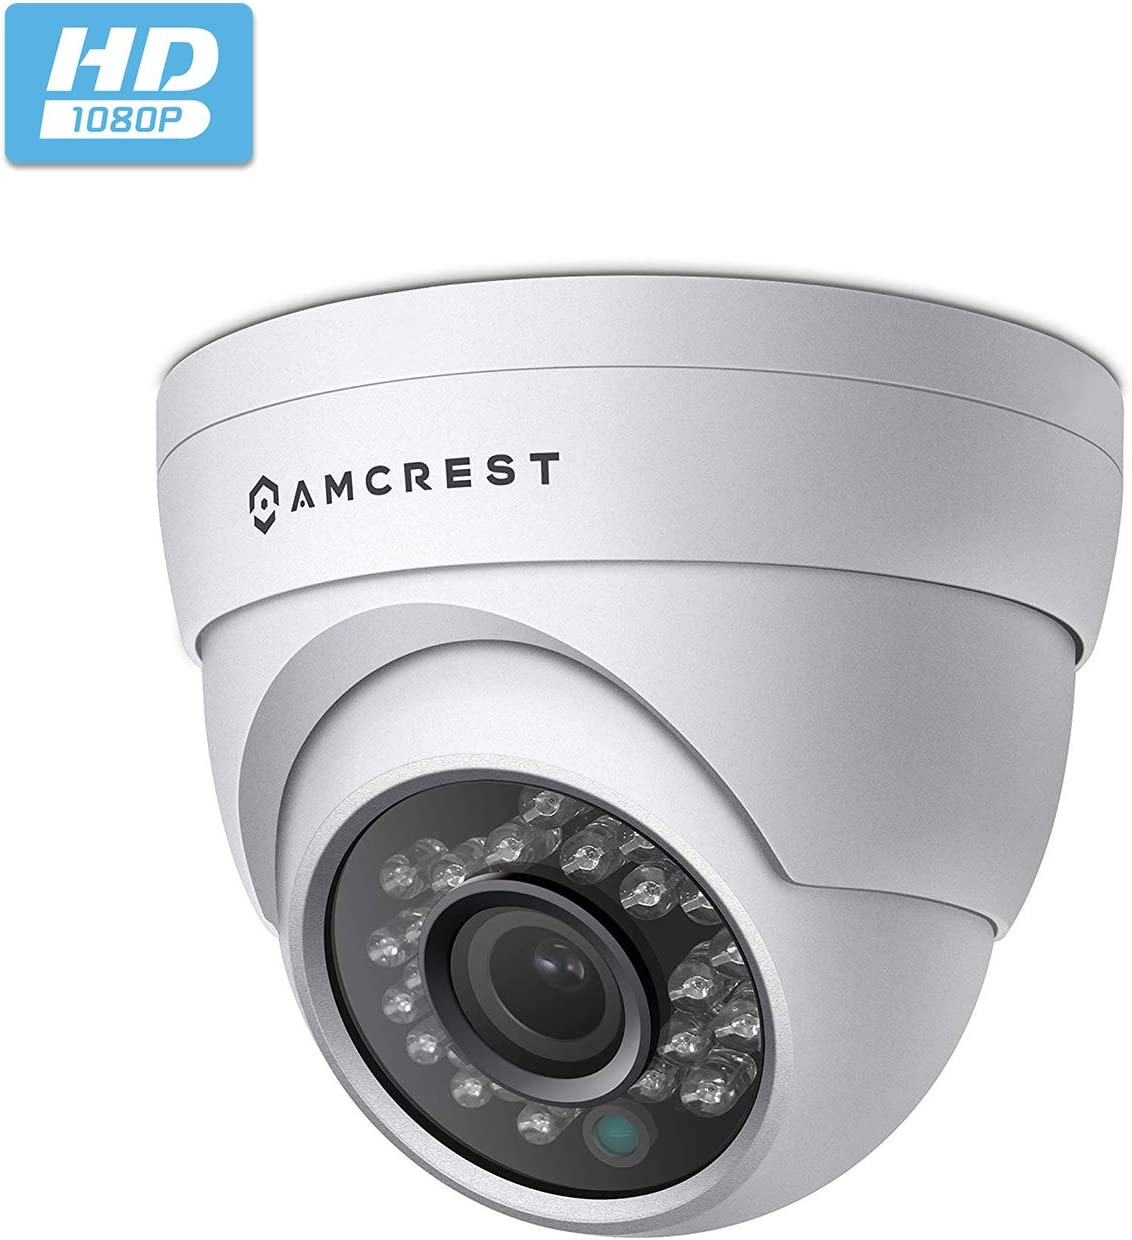 Amcrest Full HD 1080P 1920TVL Dome Outdoor Security Camera Quadbrid 4-in1 HD-CVI TVI AHD Analog , 2MP 1920×1080, 65ft Night Vision, Metal Housing, 3.6mm Lens 85 Viewing Angle, White AF-2MDT-36W